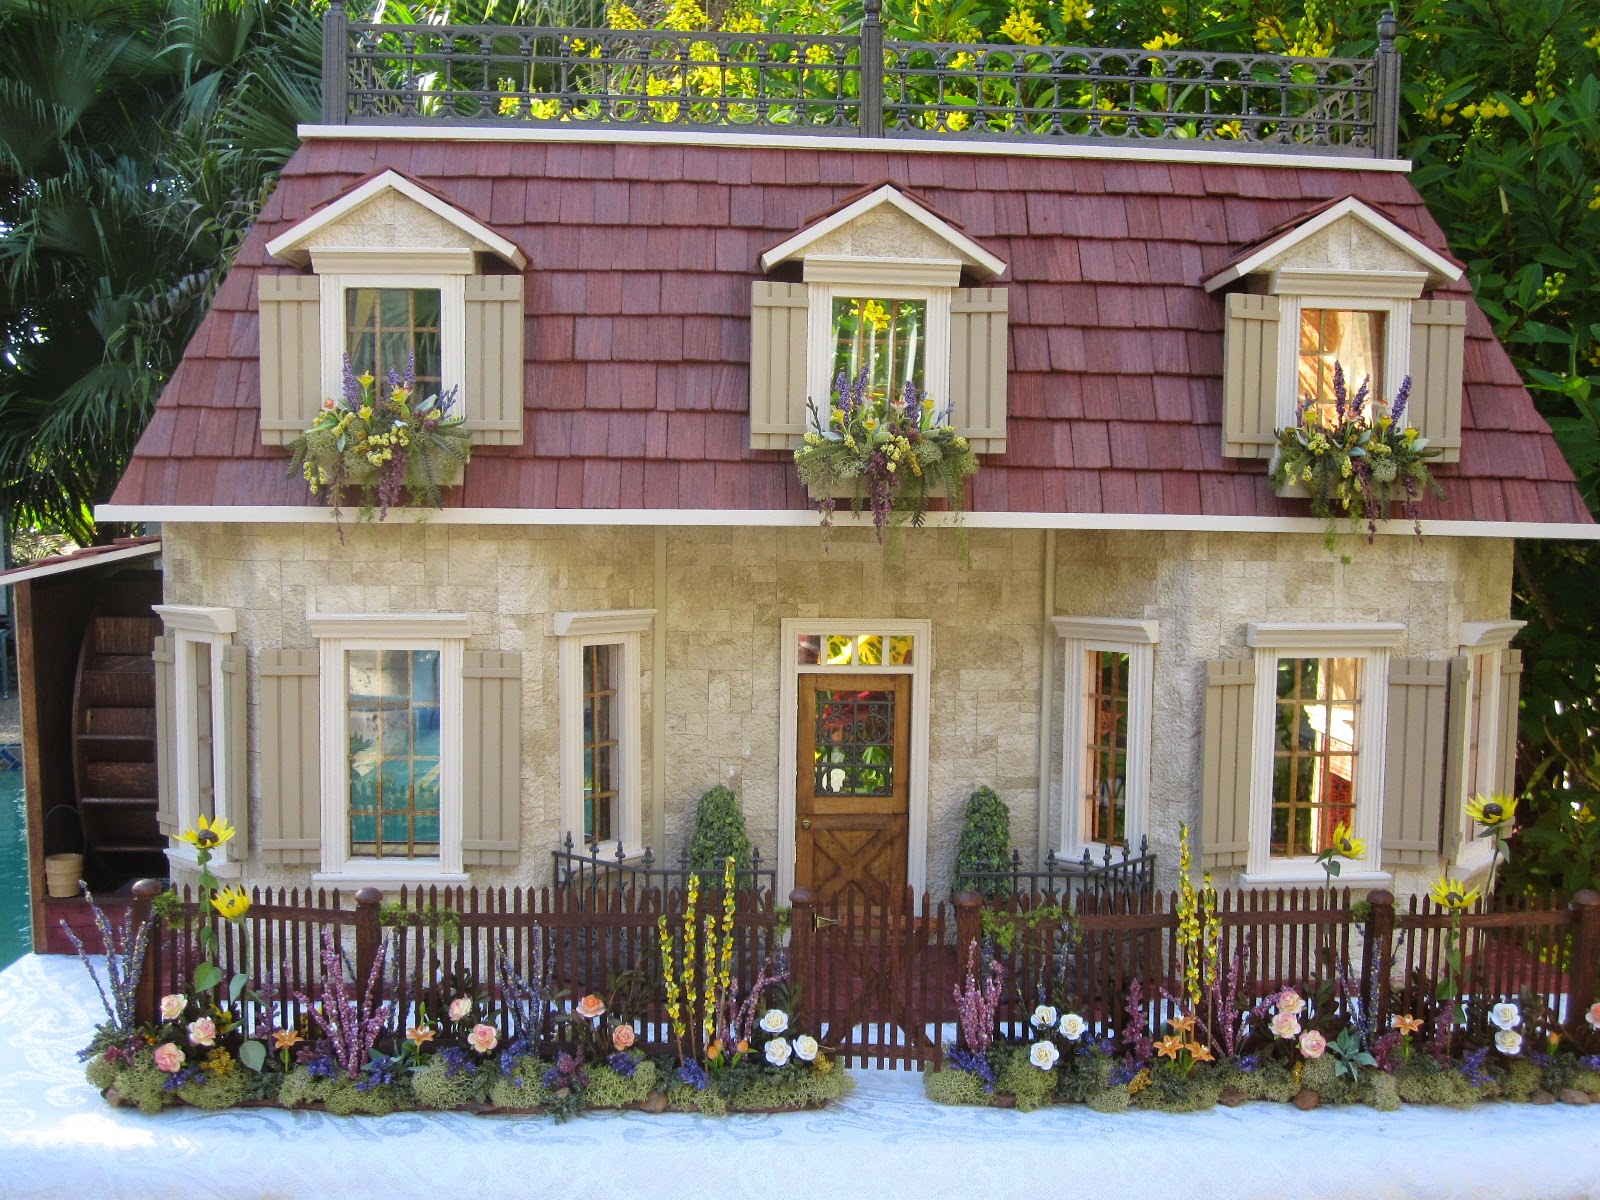 Dollhouses by robin carey francais chalet champagne en pierre for French countryside house